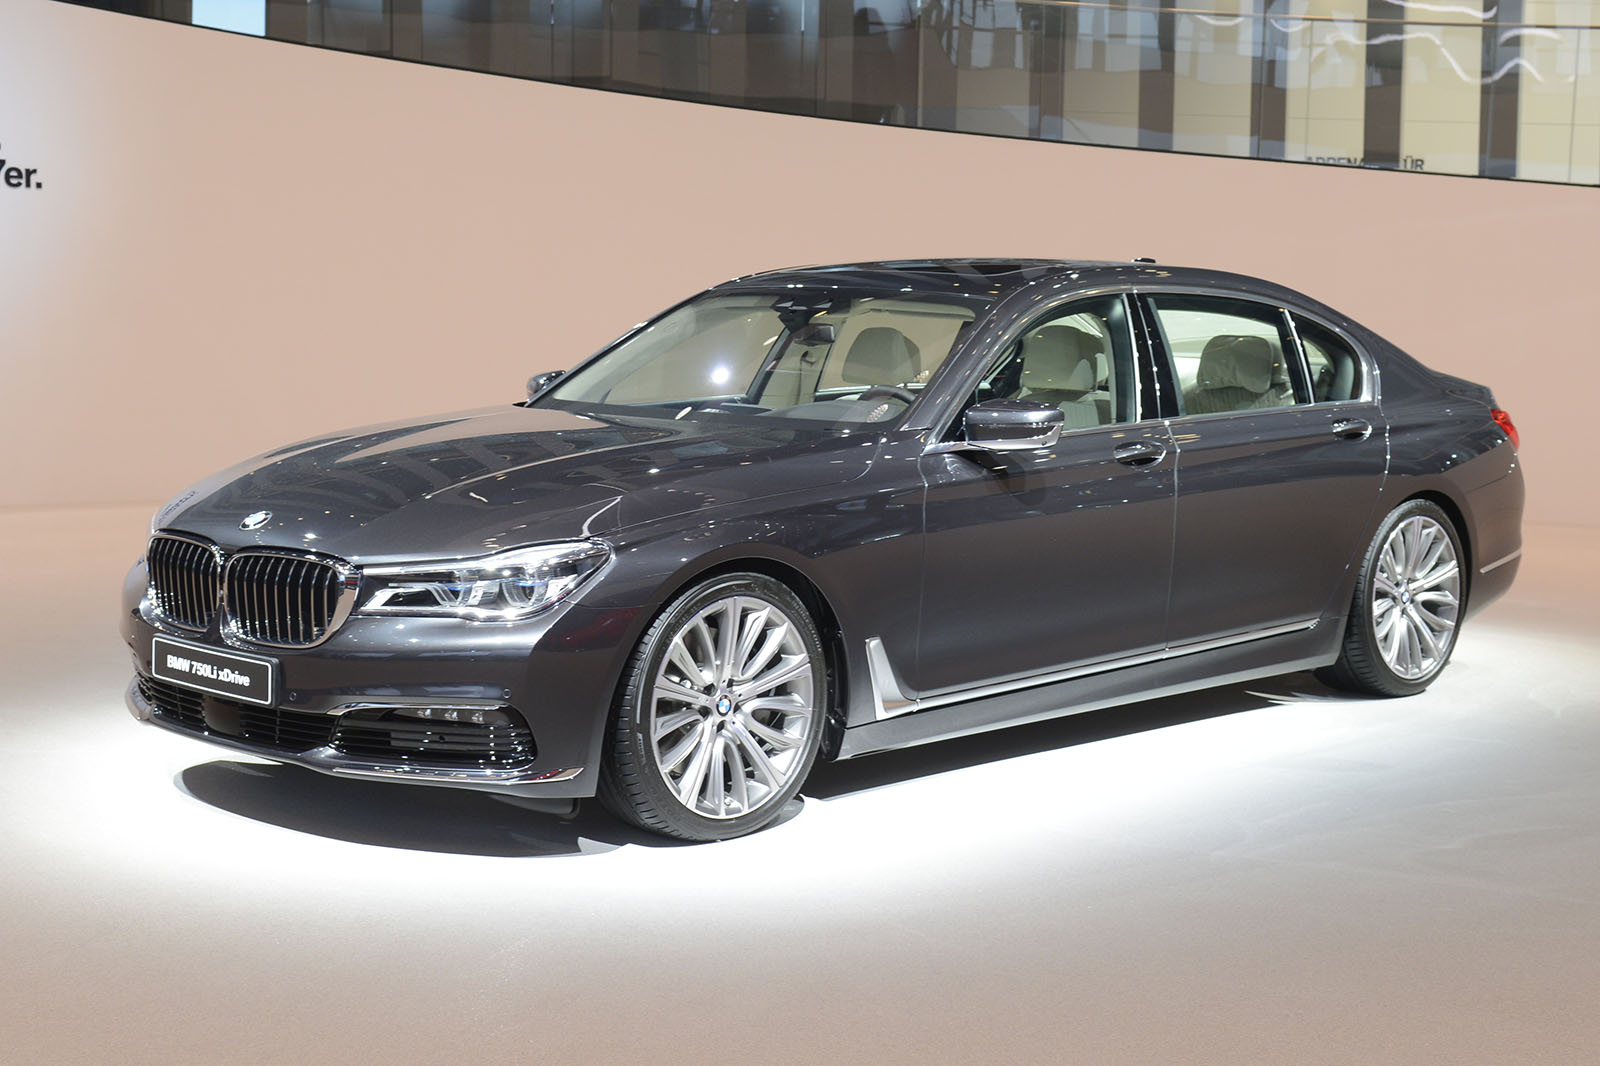 2015 Bmw 7 Series Latest Pictures Reveal Date And Engine Information